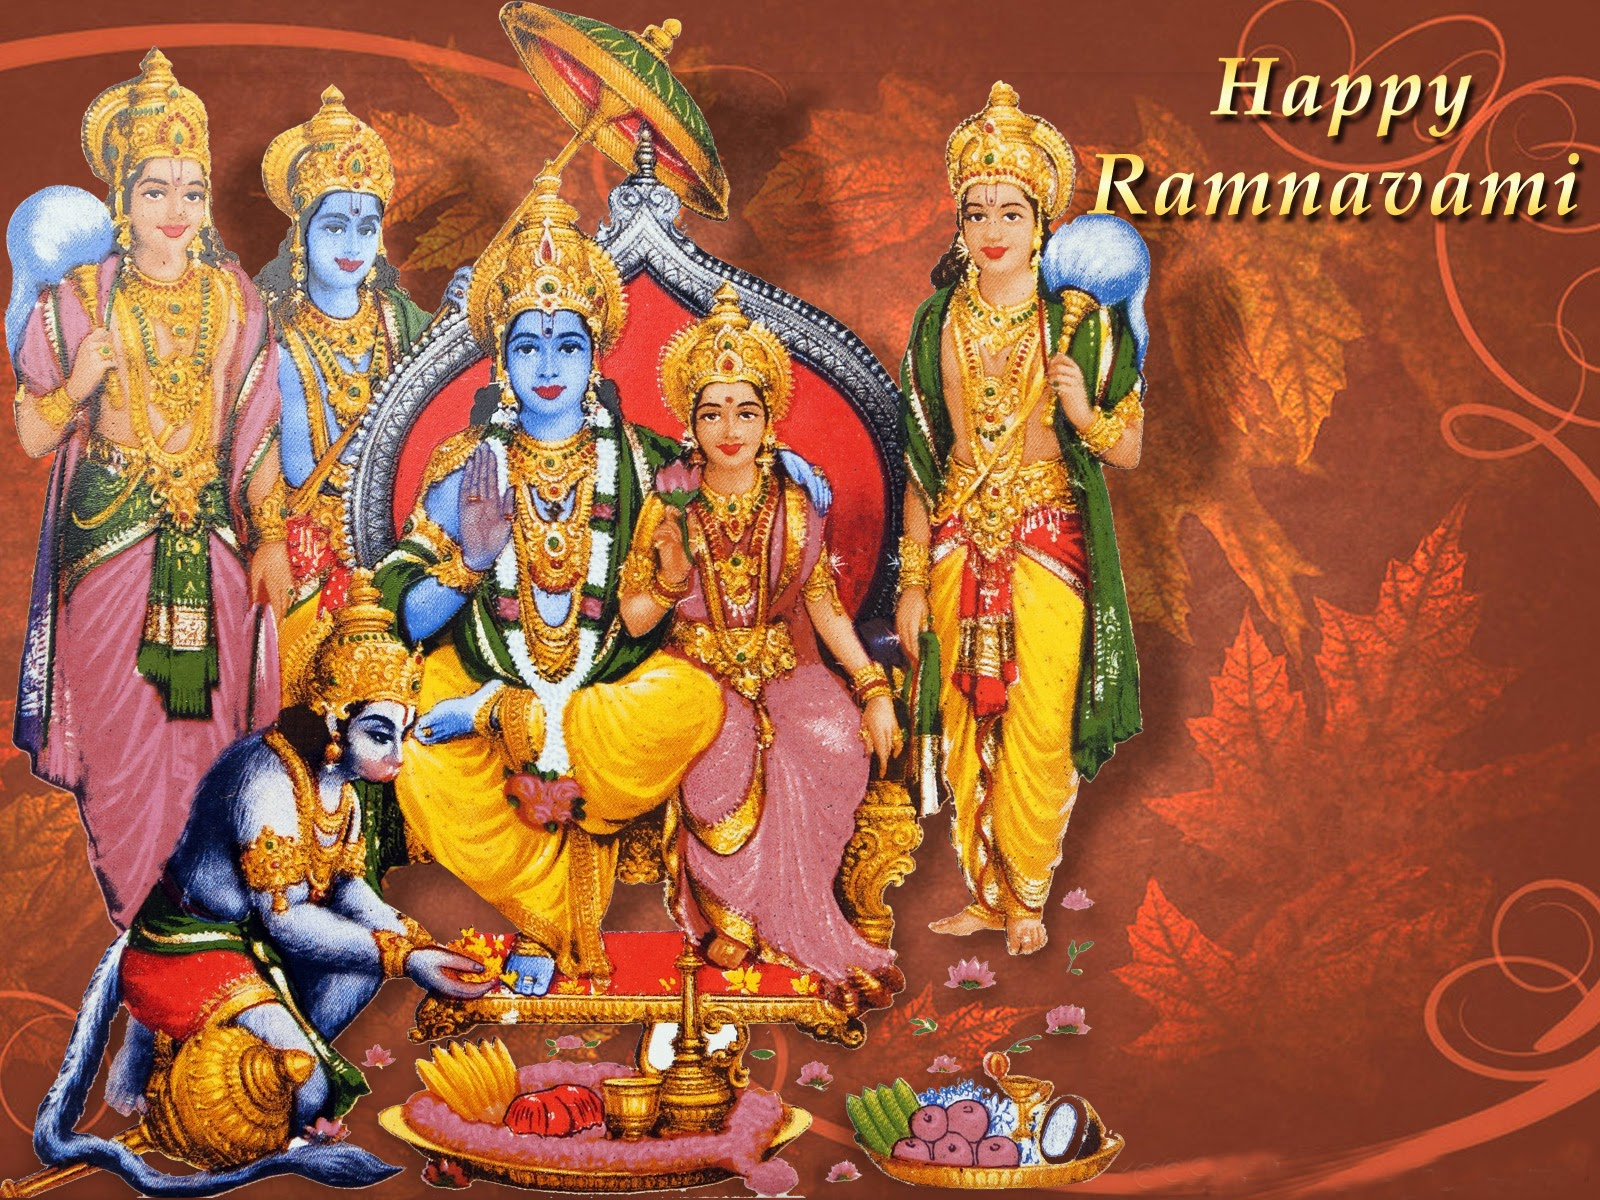 Happy Sri Rama Navami Greetings Hd Wallpapers Sms Images Messages